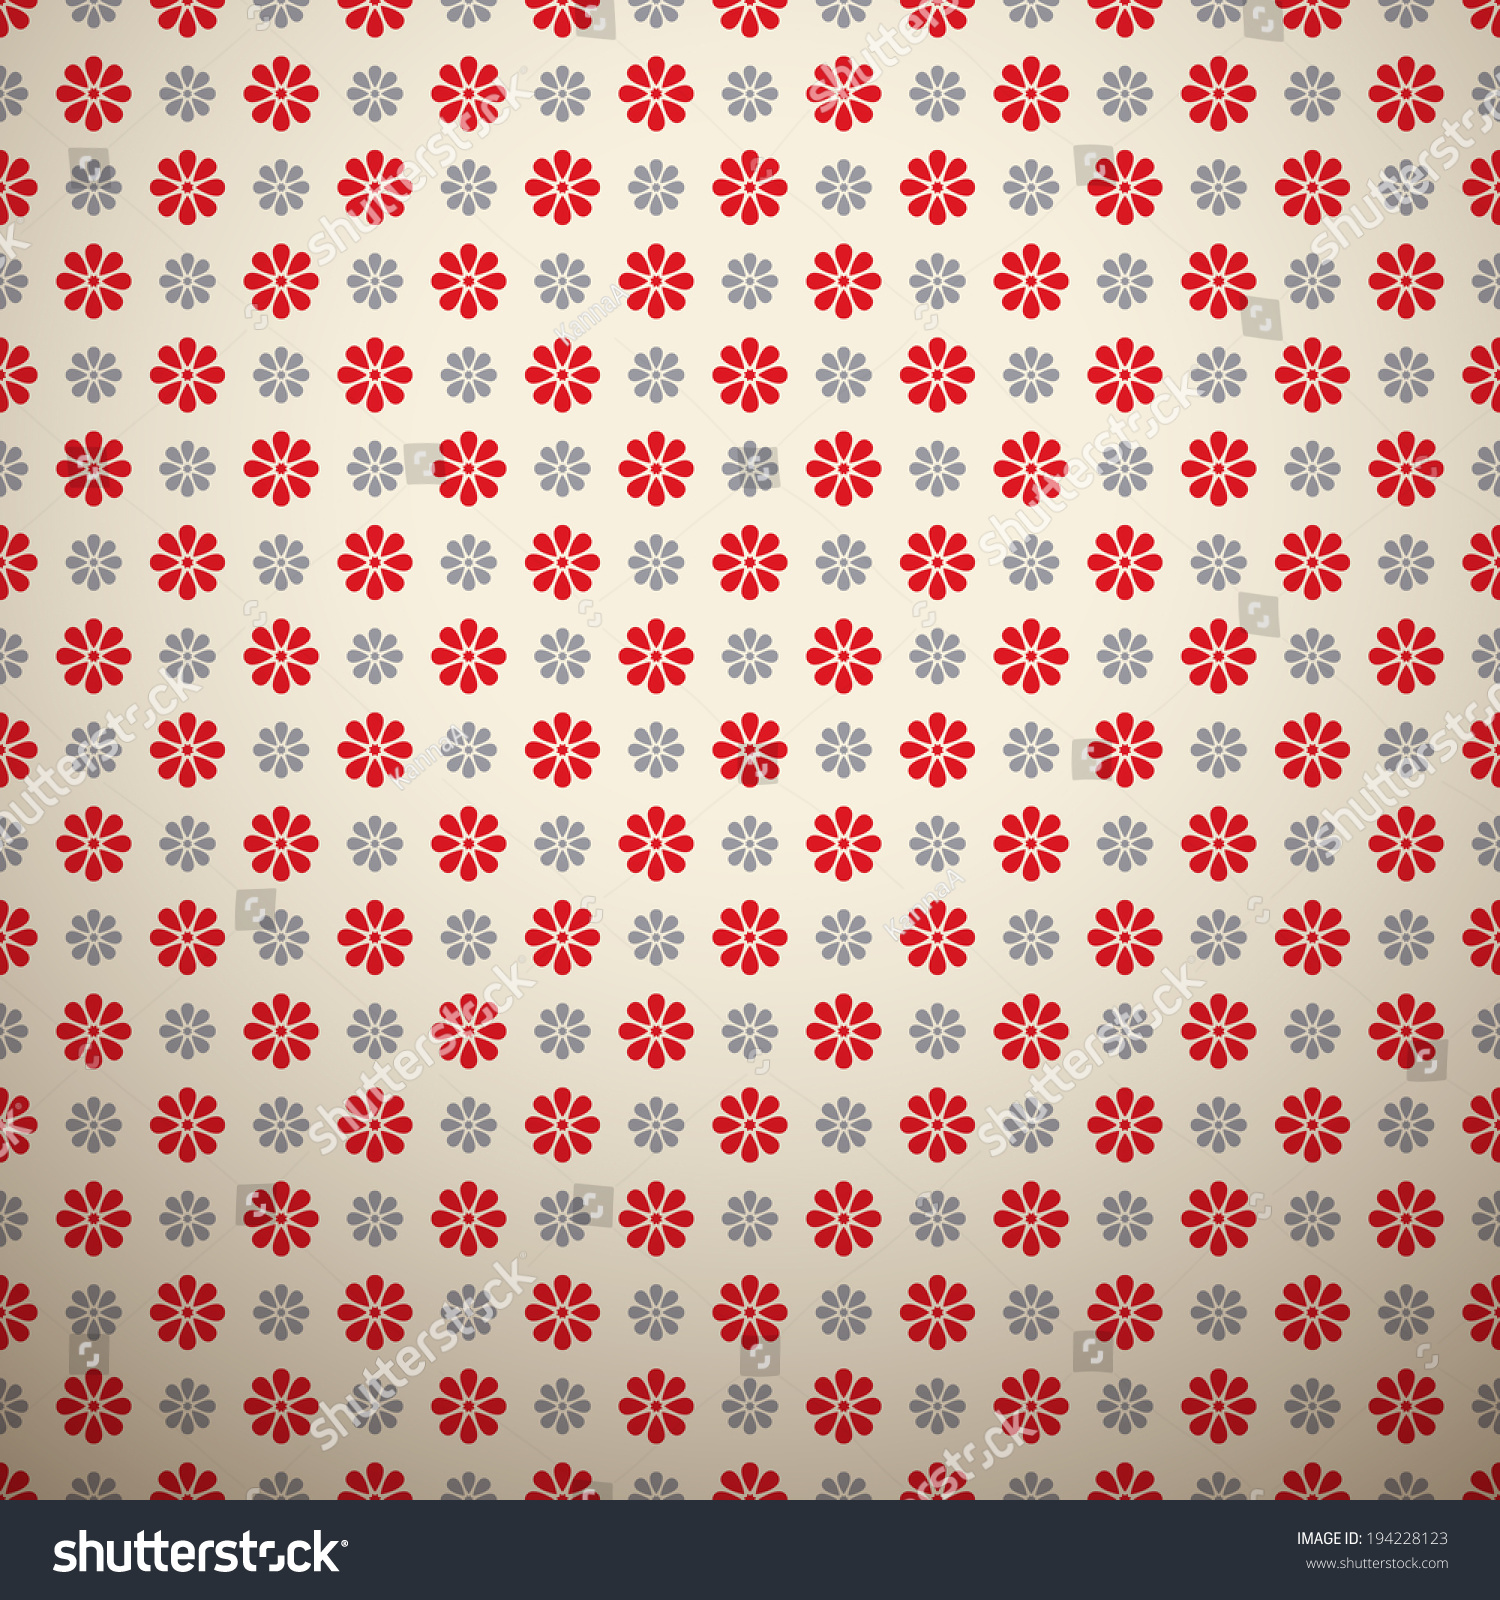 Floral Fashionable Vector Pattern Tiling Retro Stock Vector ...